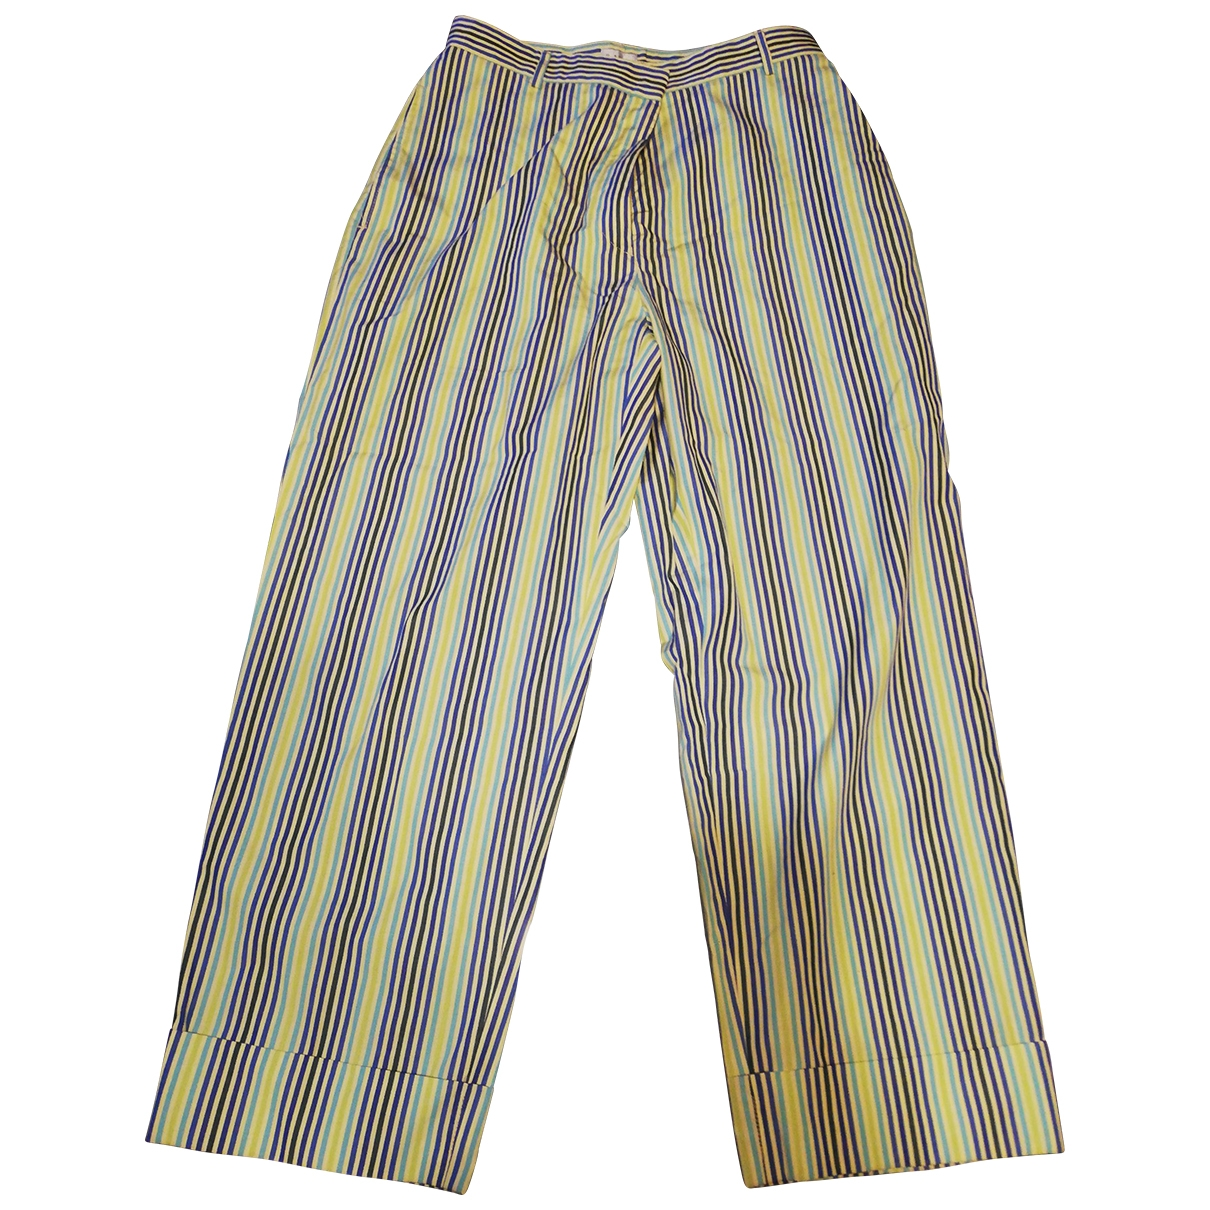 Paul Smith \N Multicolour Cotton Trousers for Women 44 IT